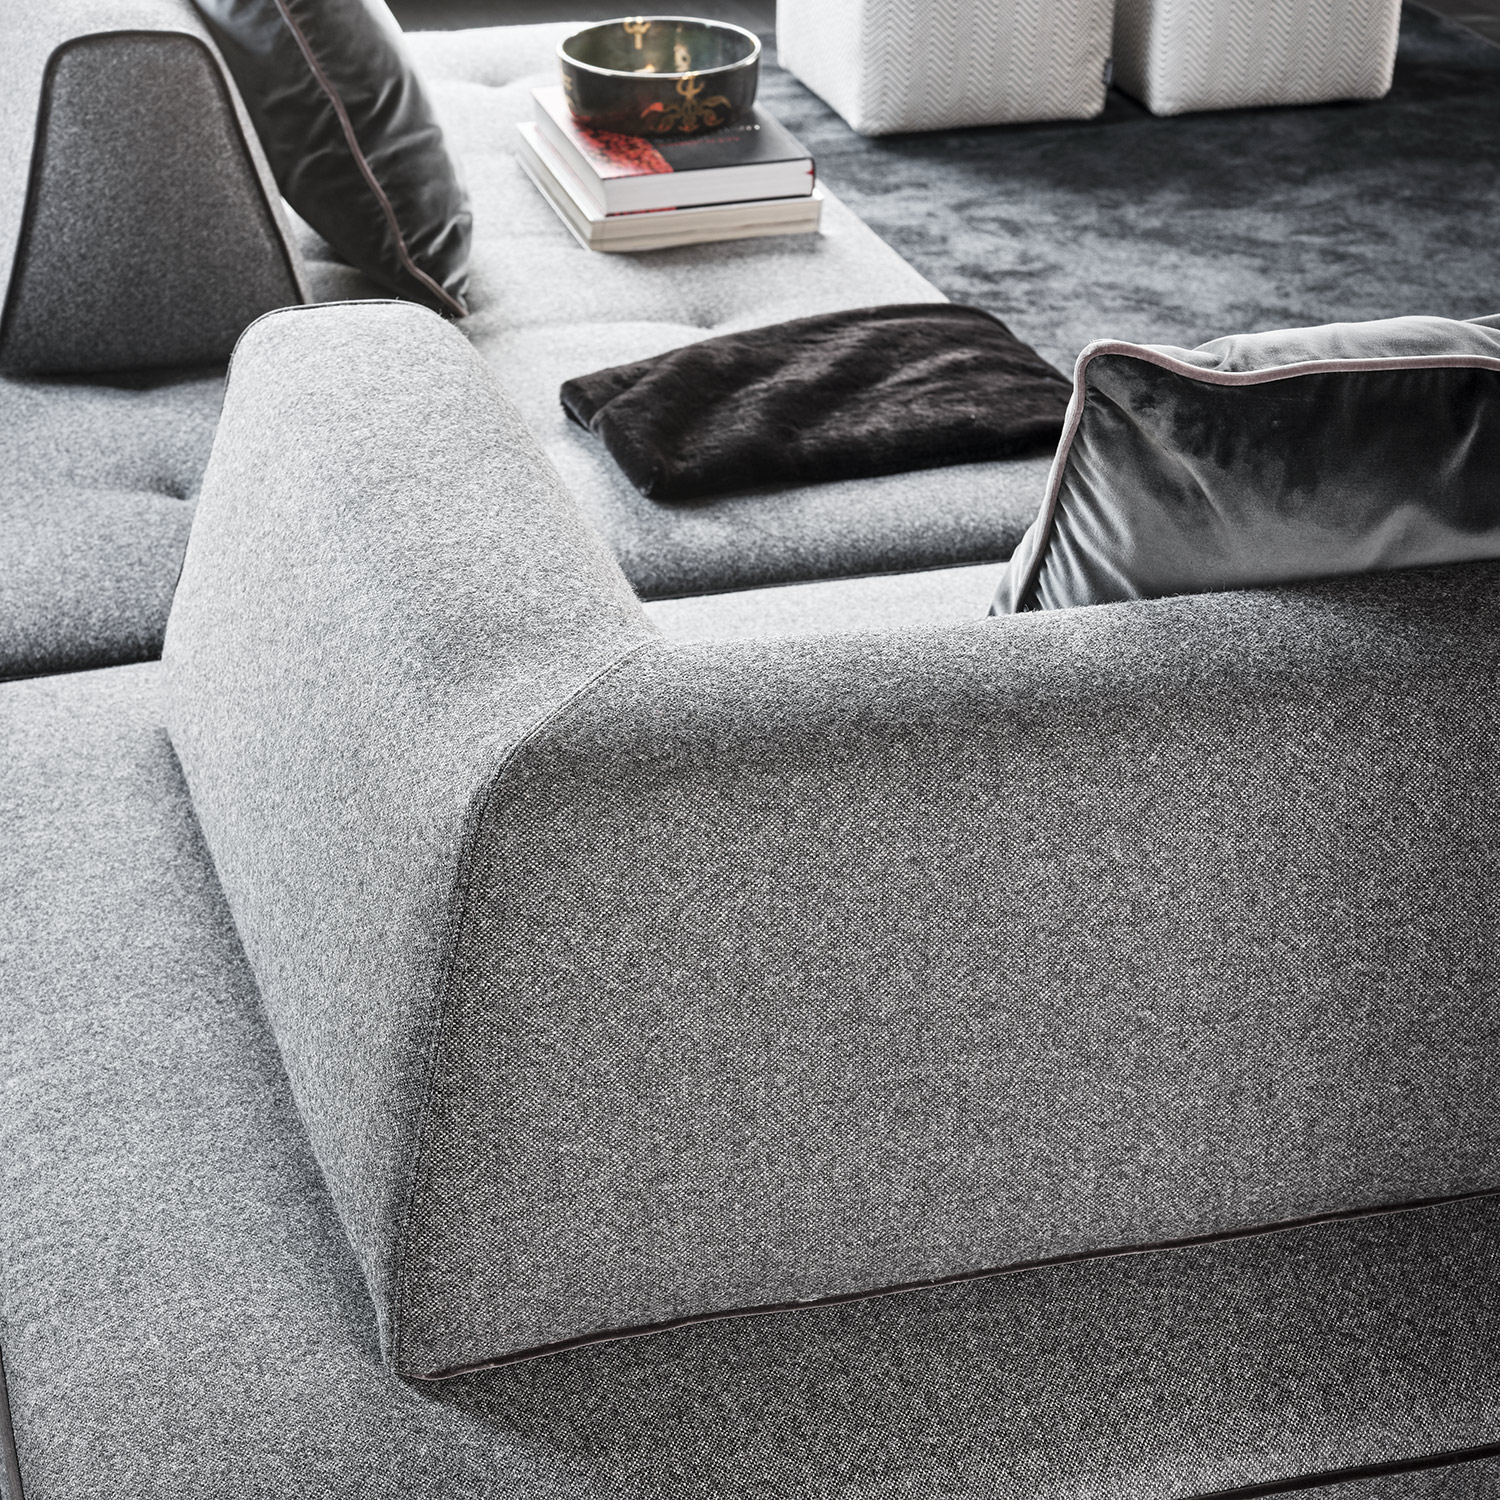 Mussi Isola sofa backrest detail